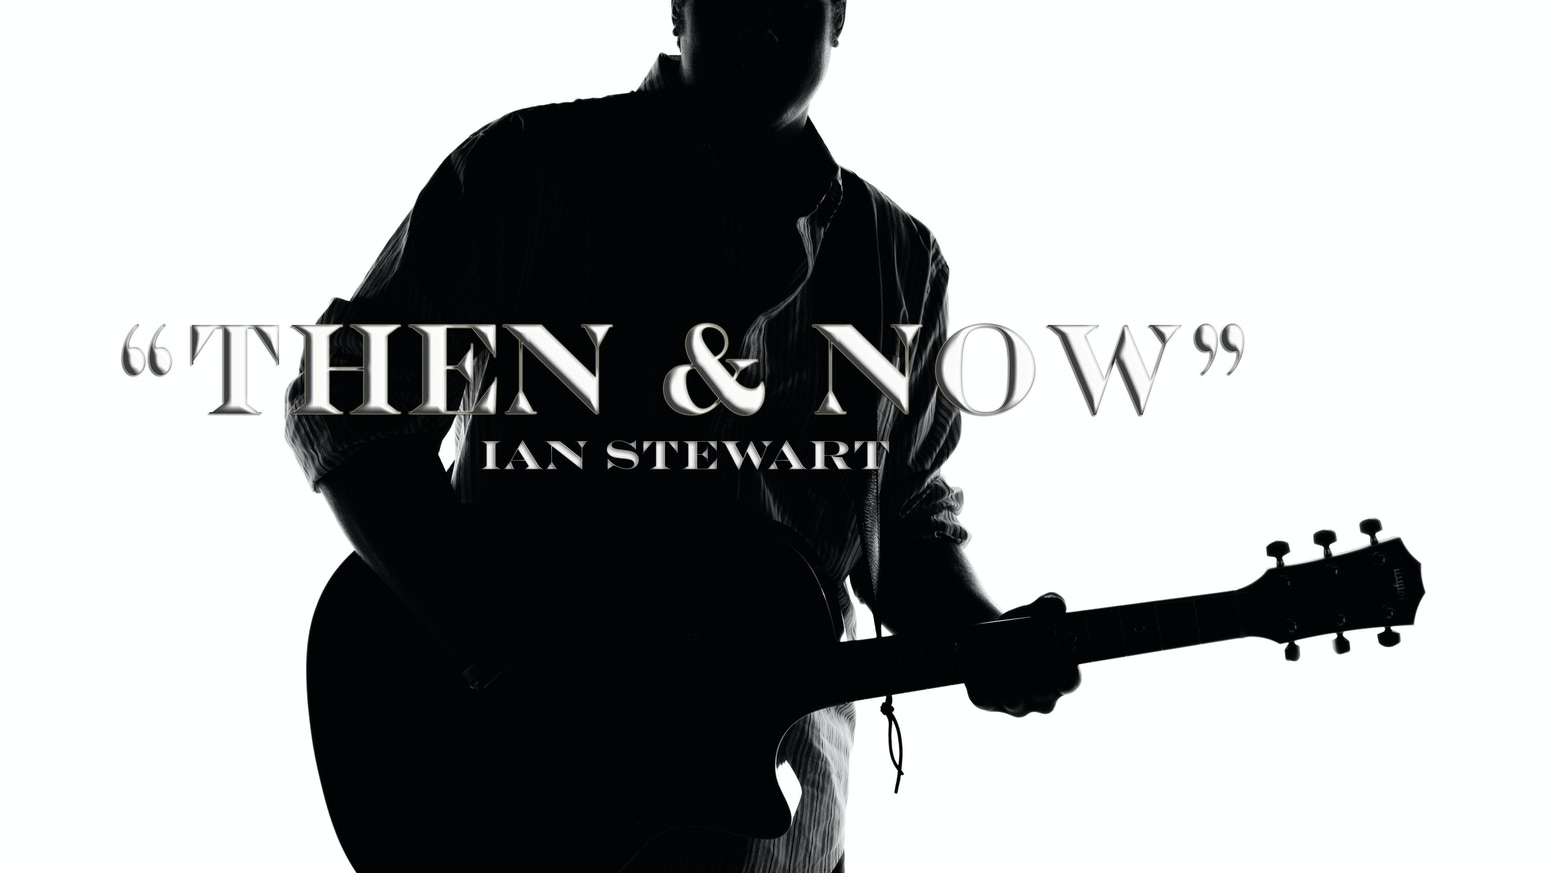 Then & Now is the 1st Solo album from me Ian Stewart. To learn more about me, my music, and my life visit www.ianstewartlive.com